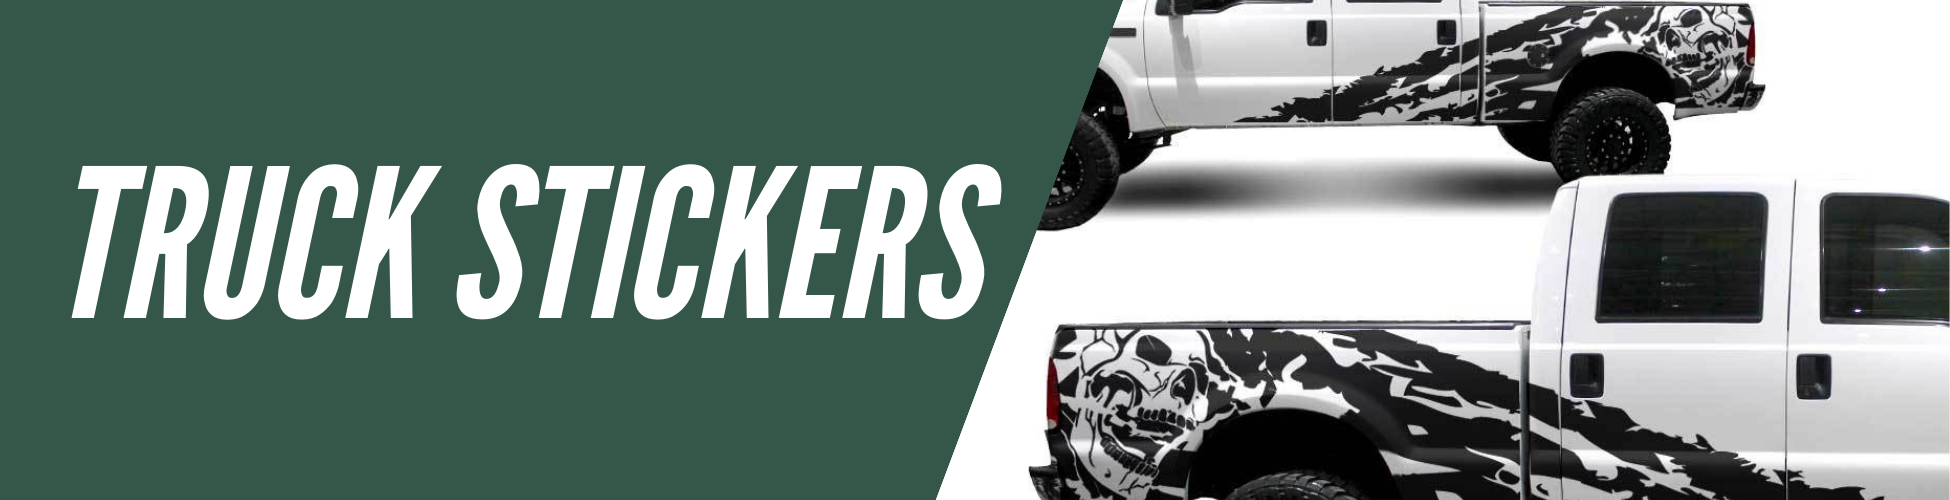 truck-stickers-banner.png